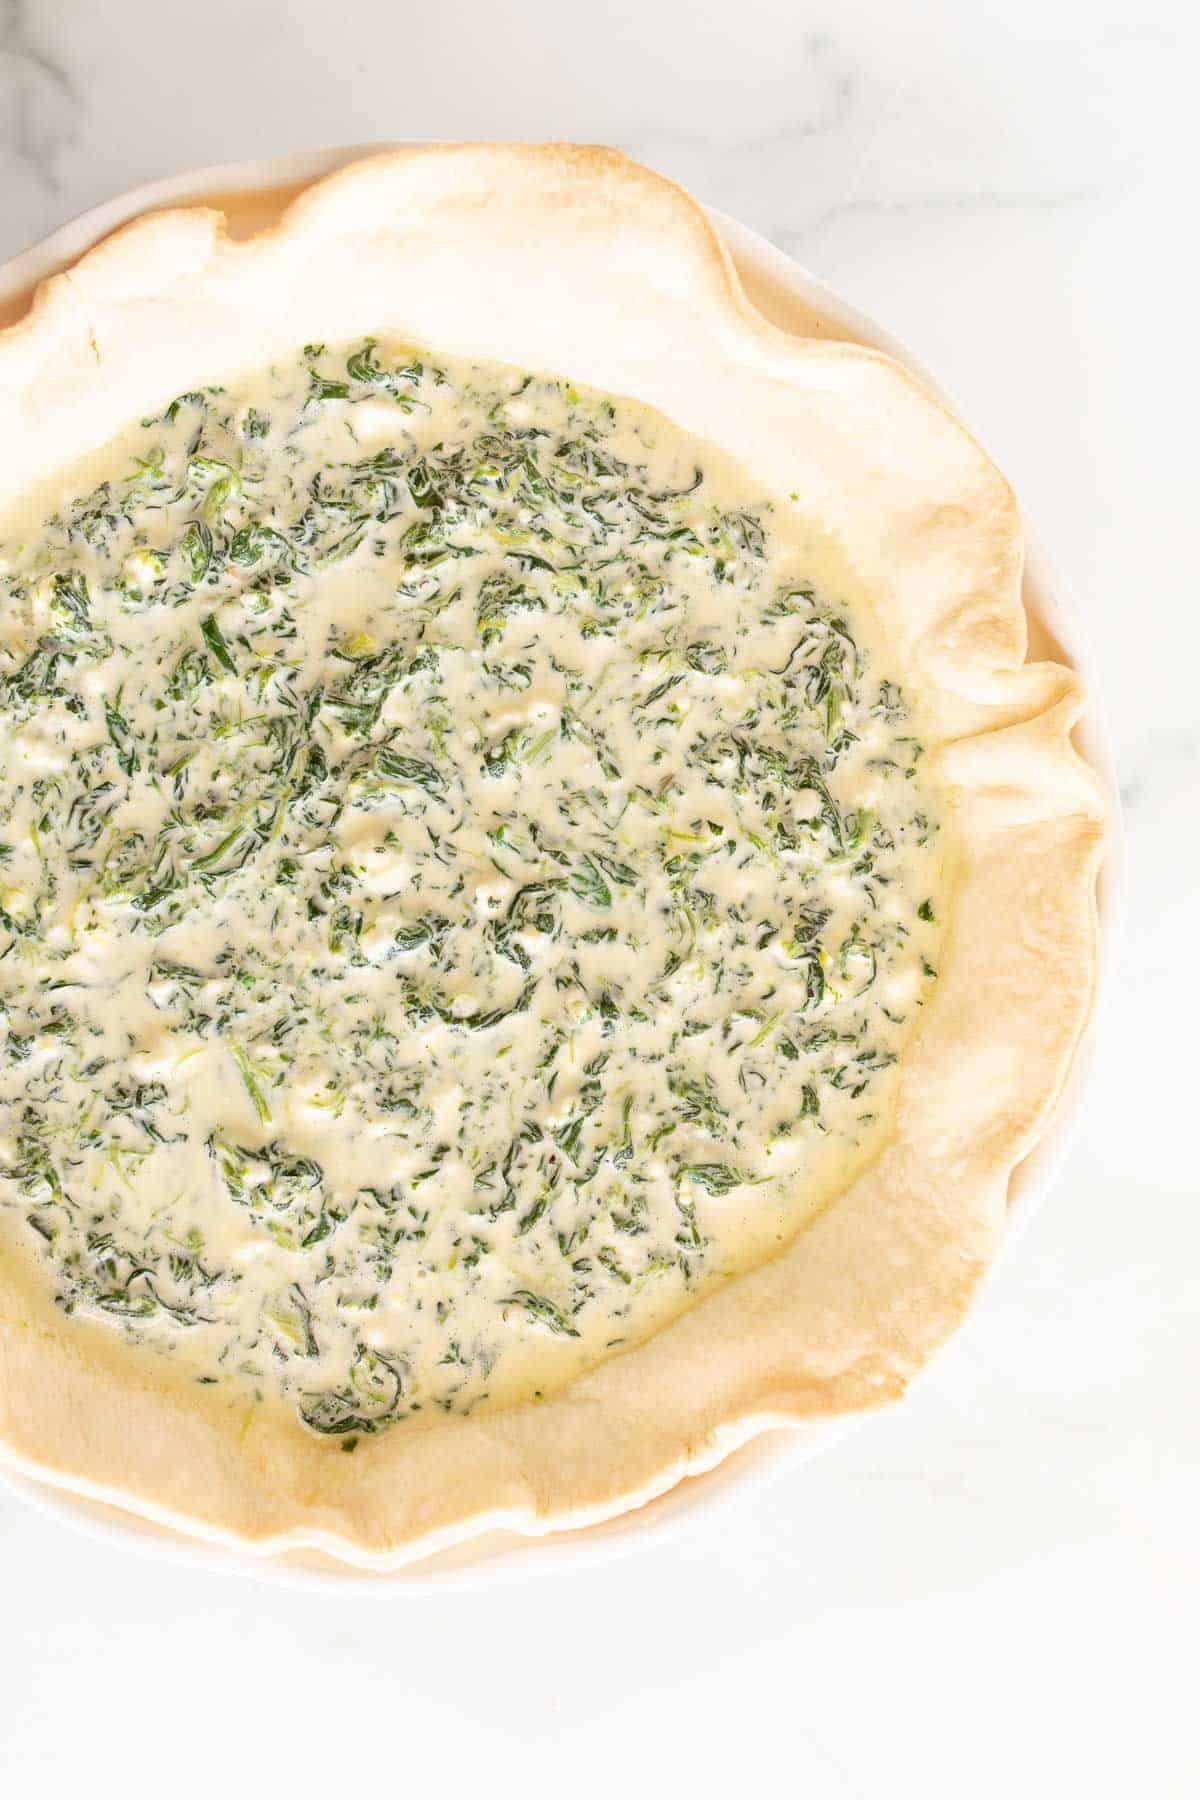 A spinach quiche before going in the oven to be baked.